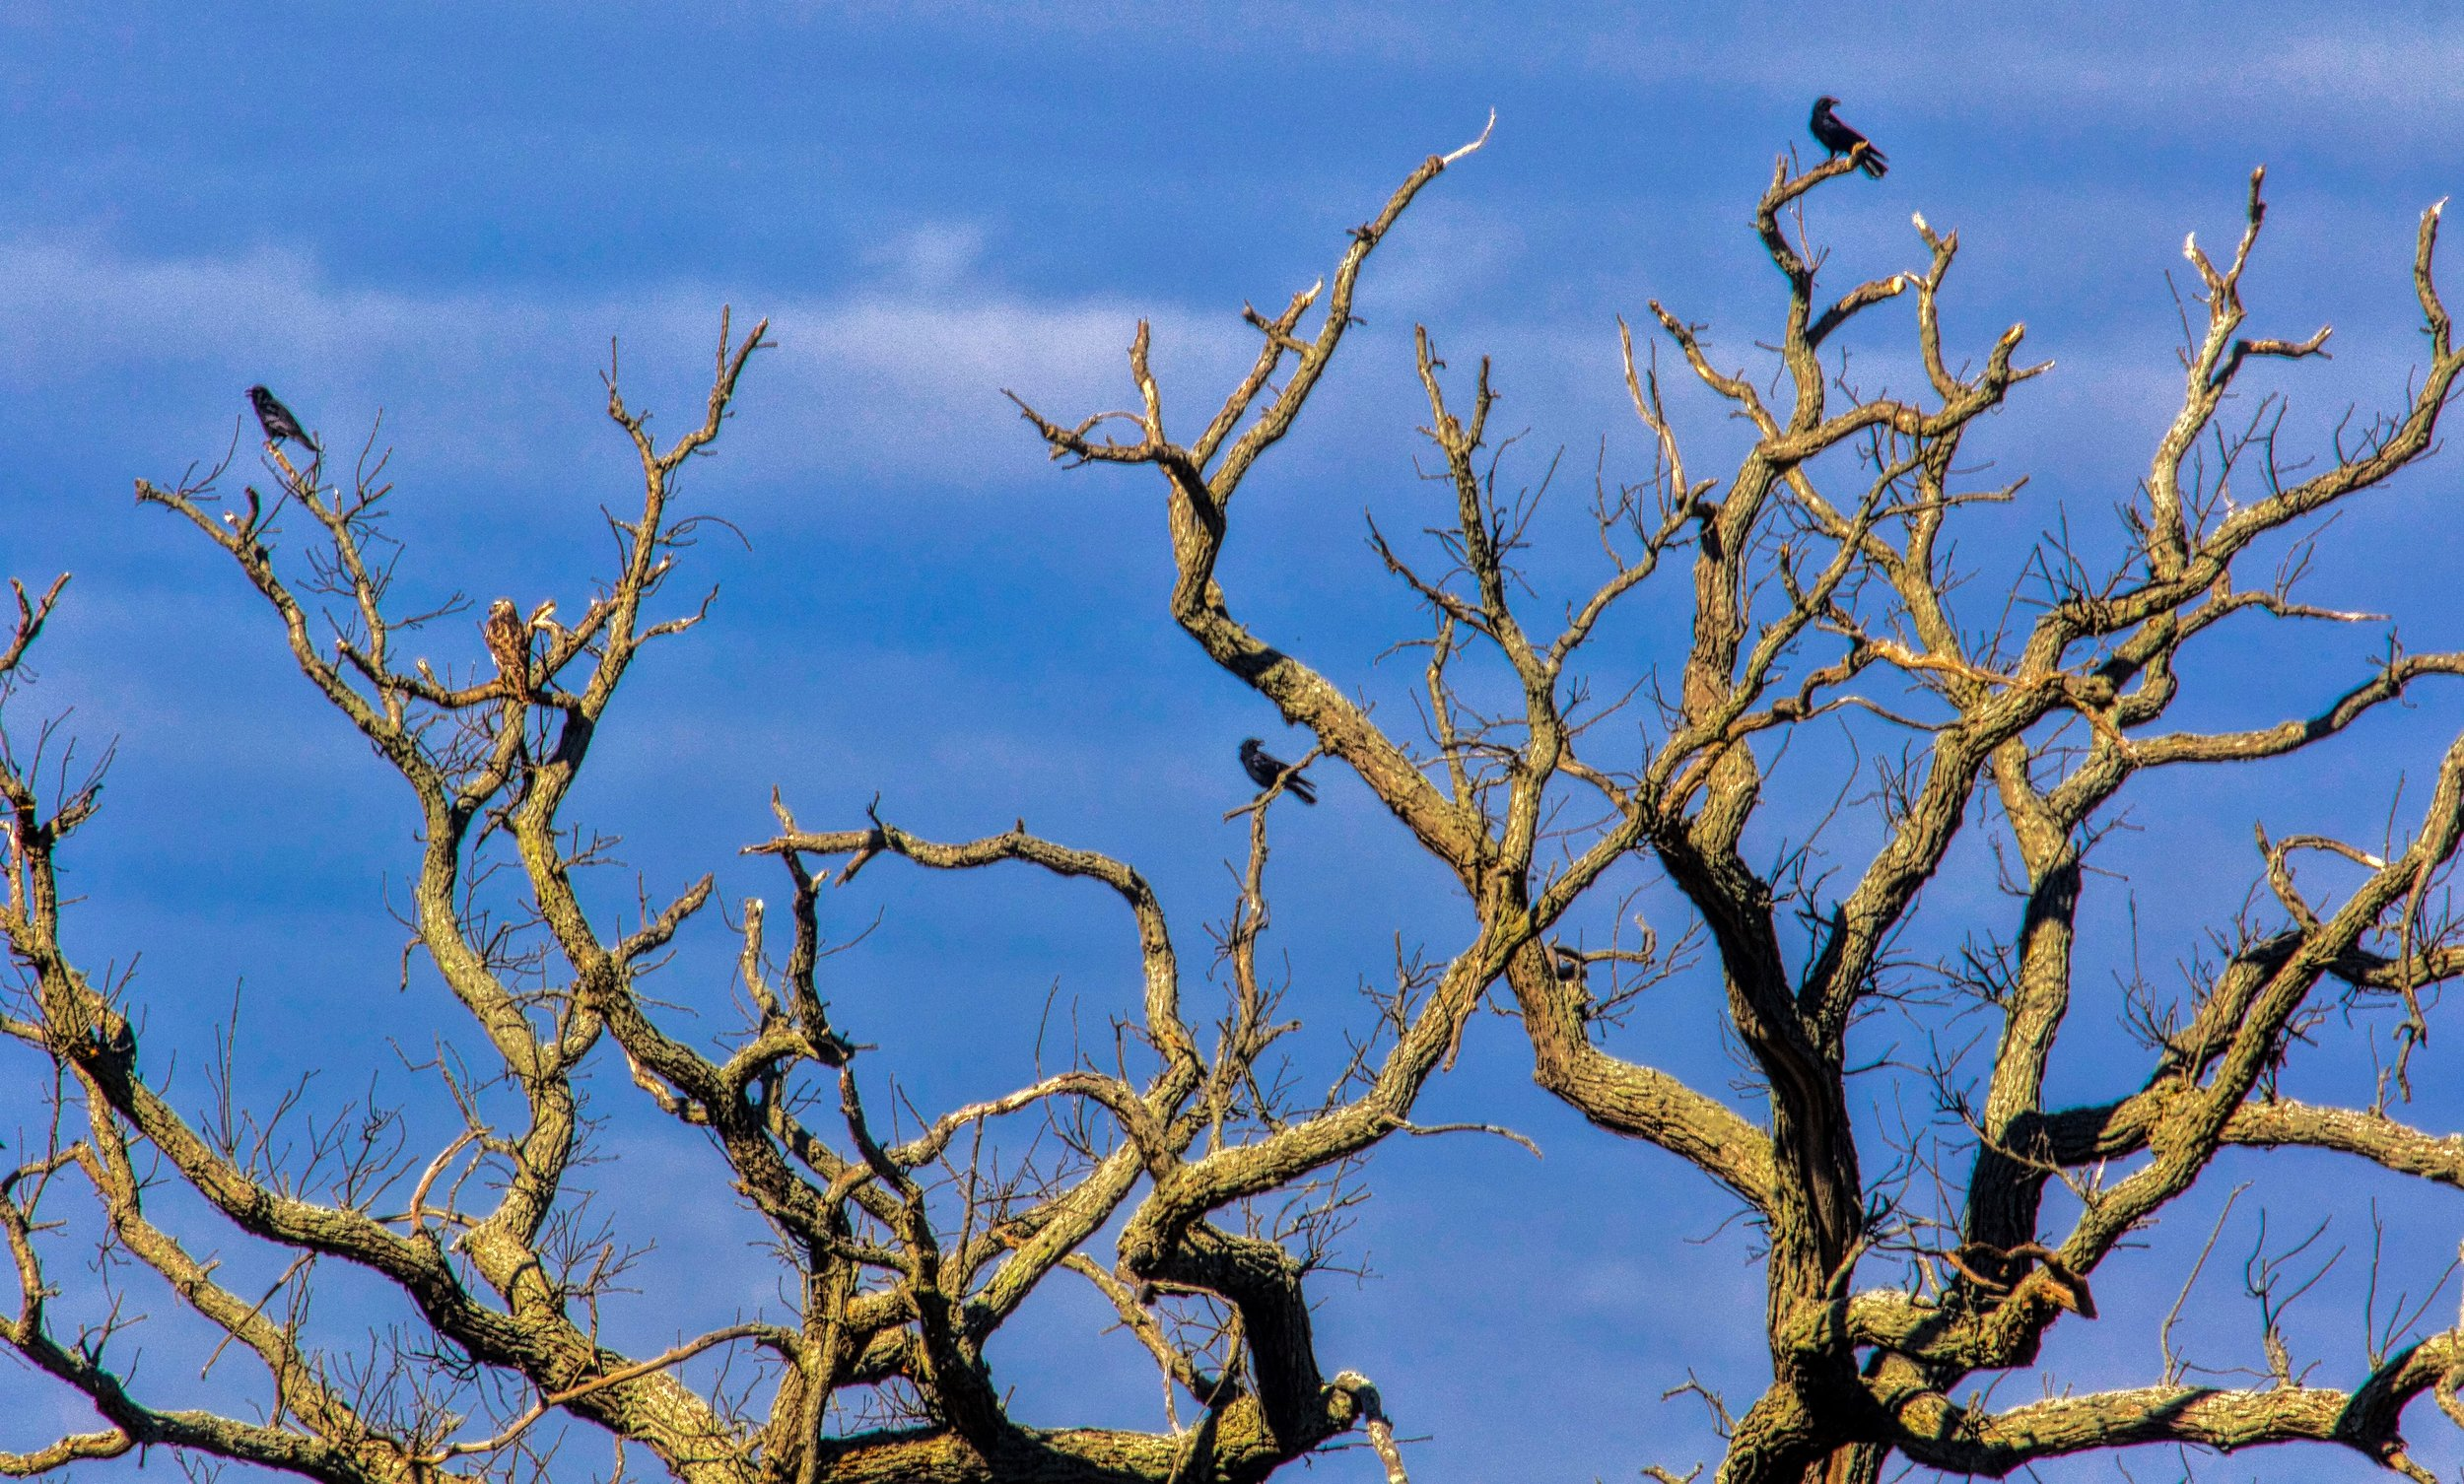 Crows Hanging Out in a Tree